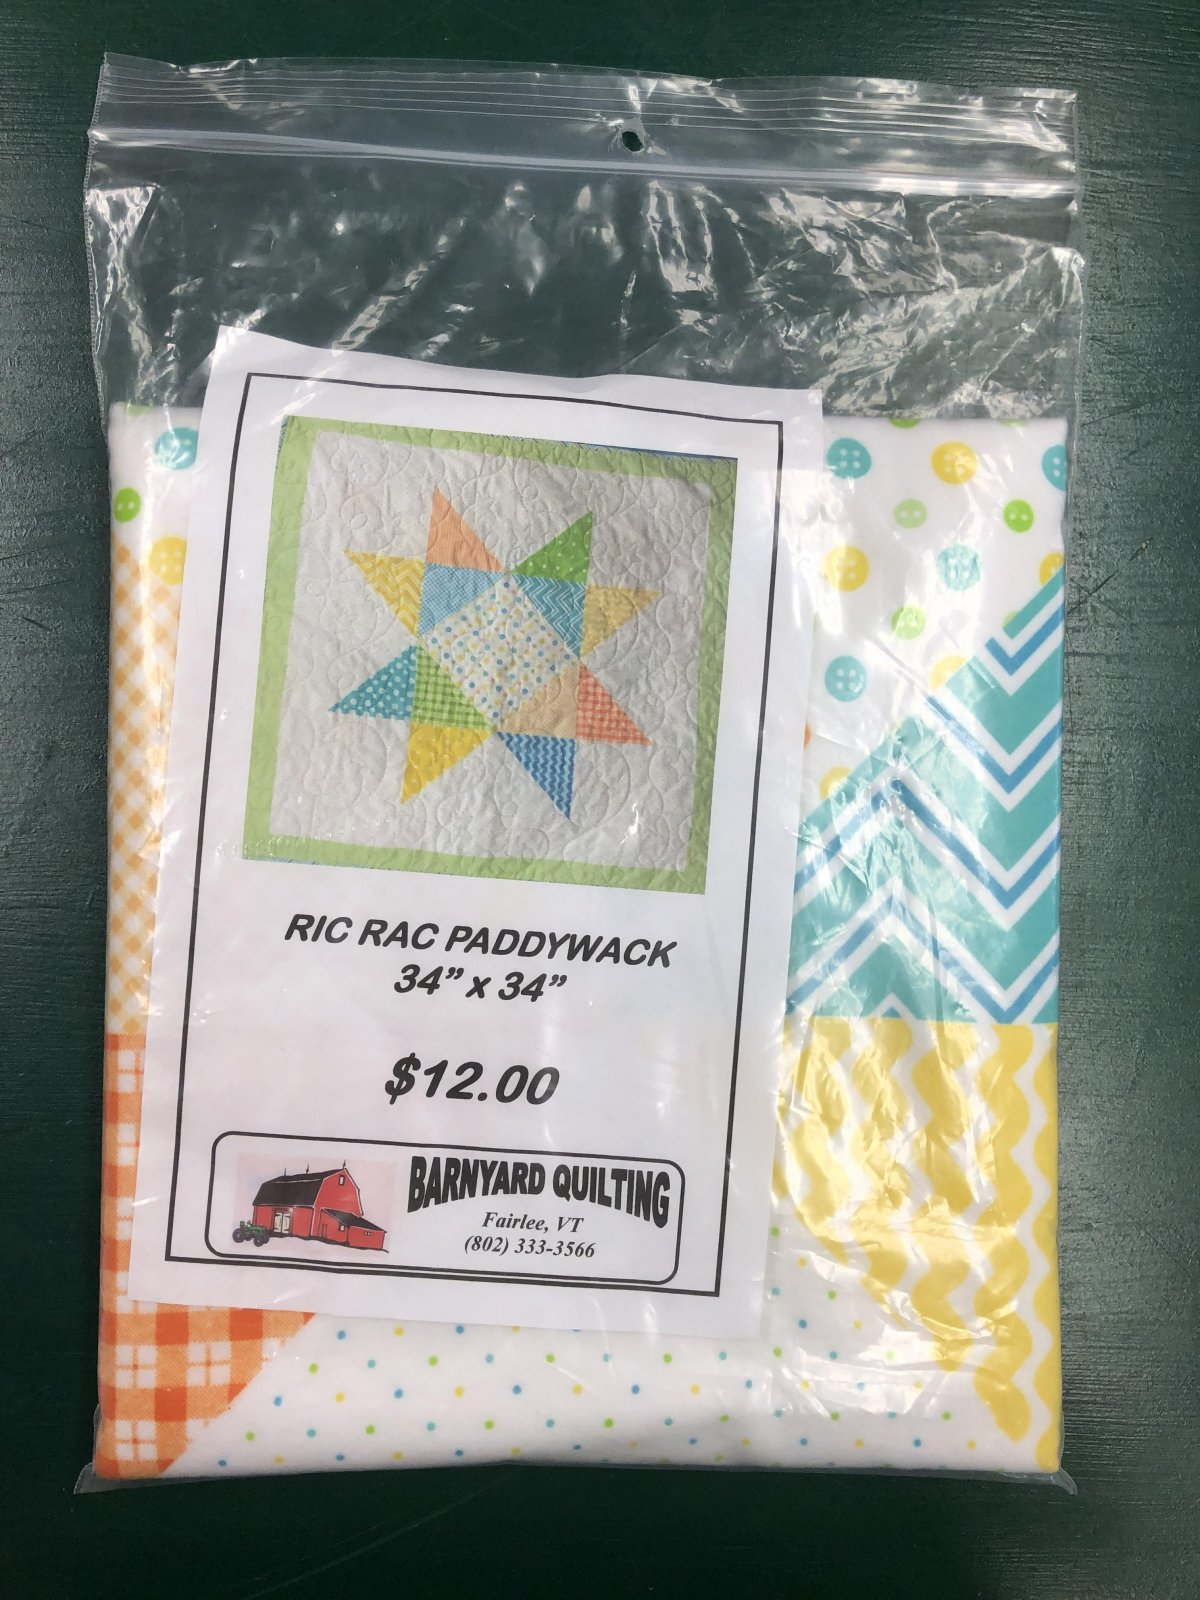 RIC RAC PADDYWACK FLANNEL BABY QUILT KIT